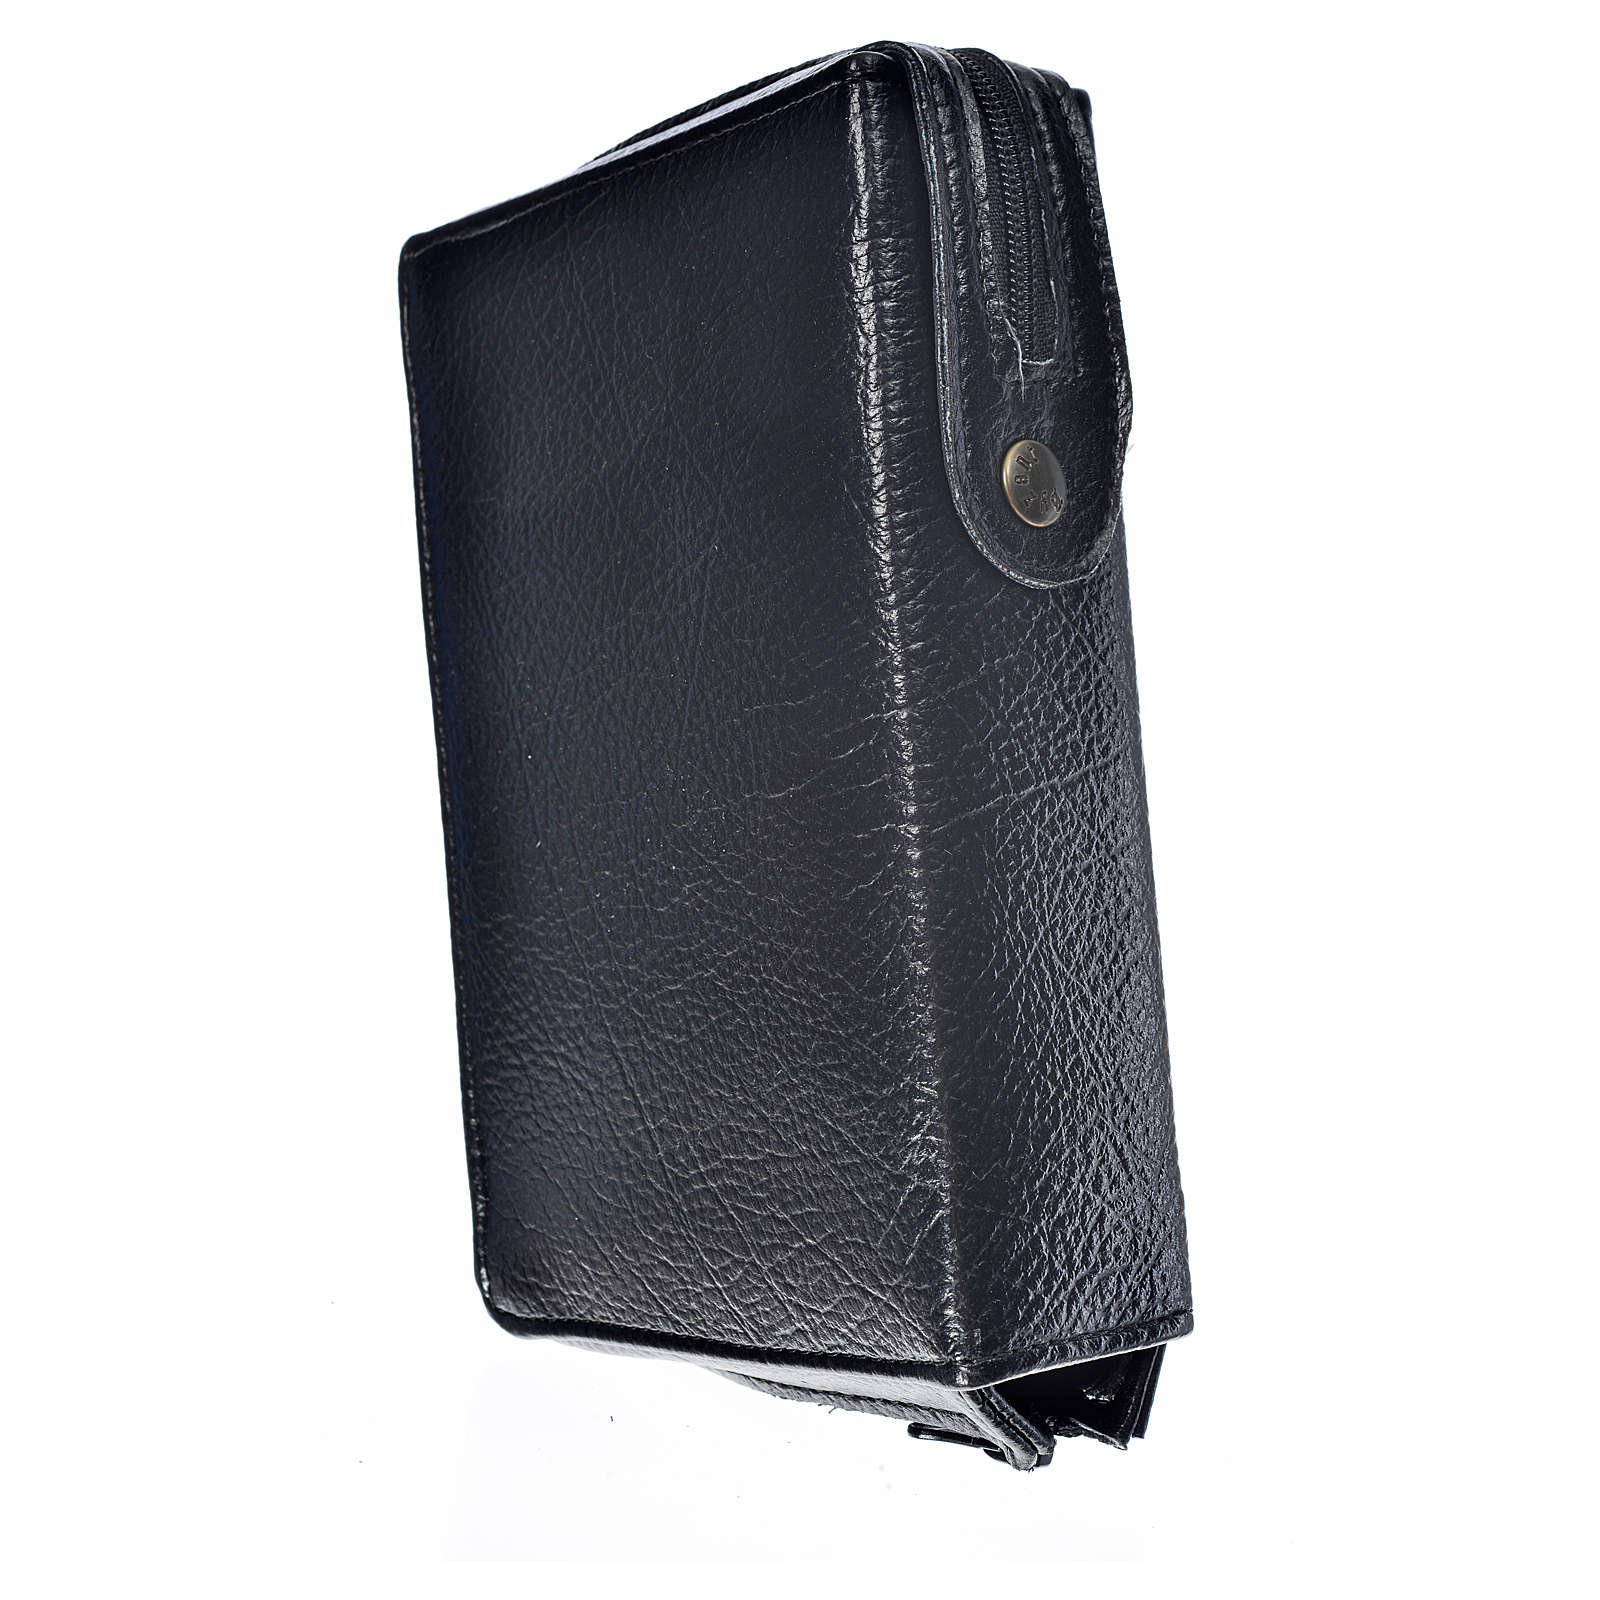 Divine office cover black bonded leather Divine Mercy image 4